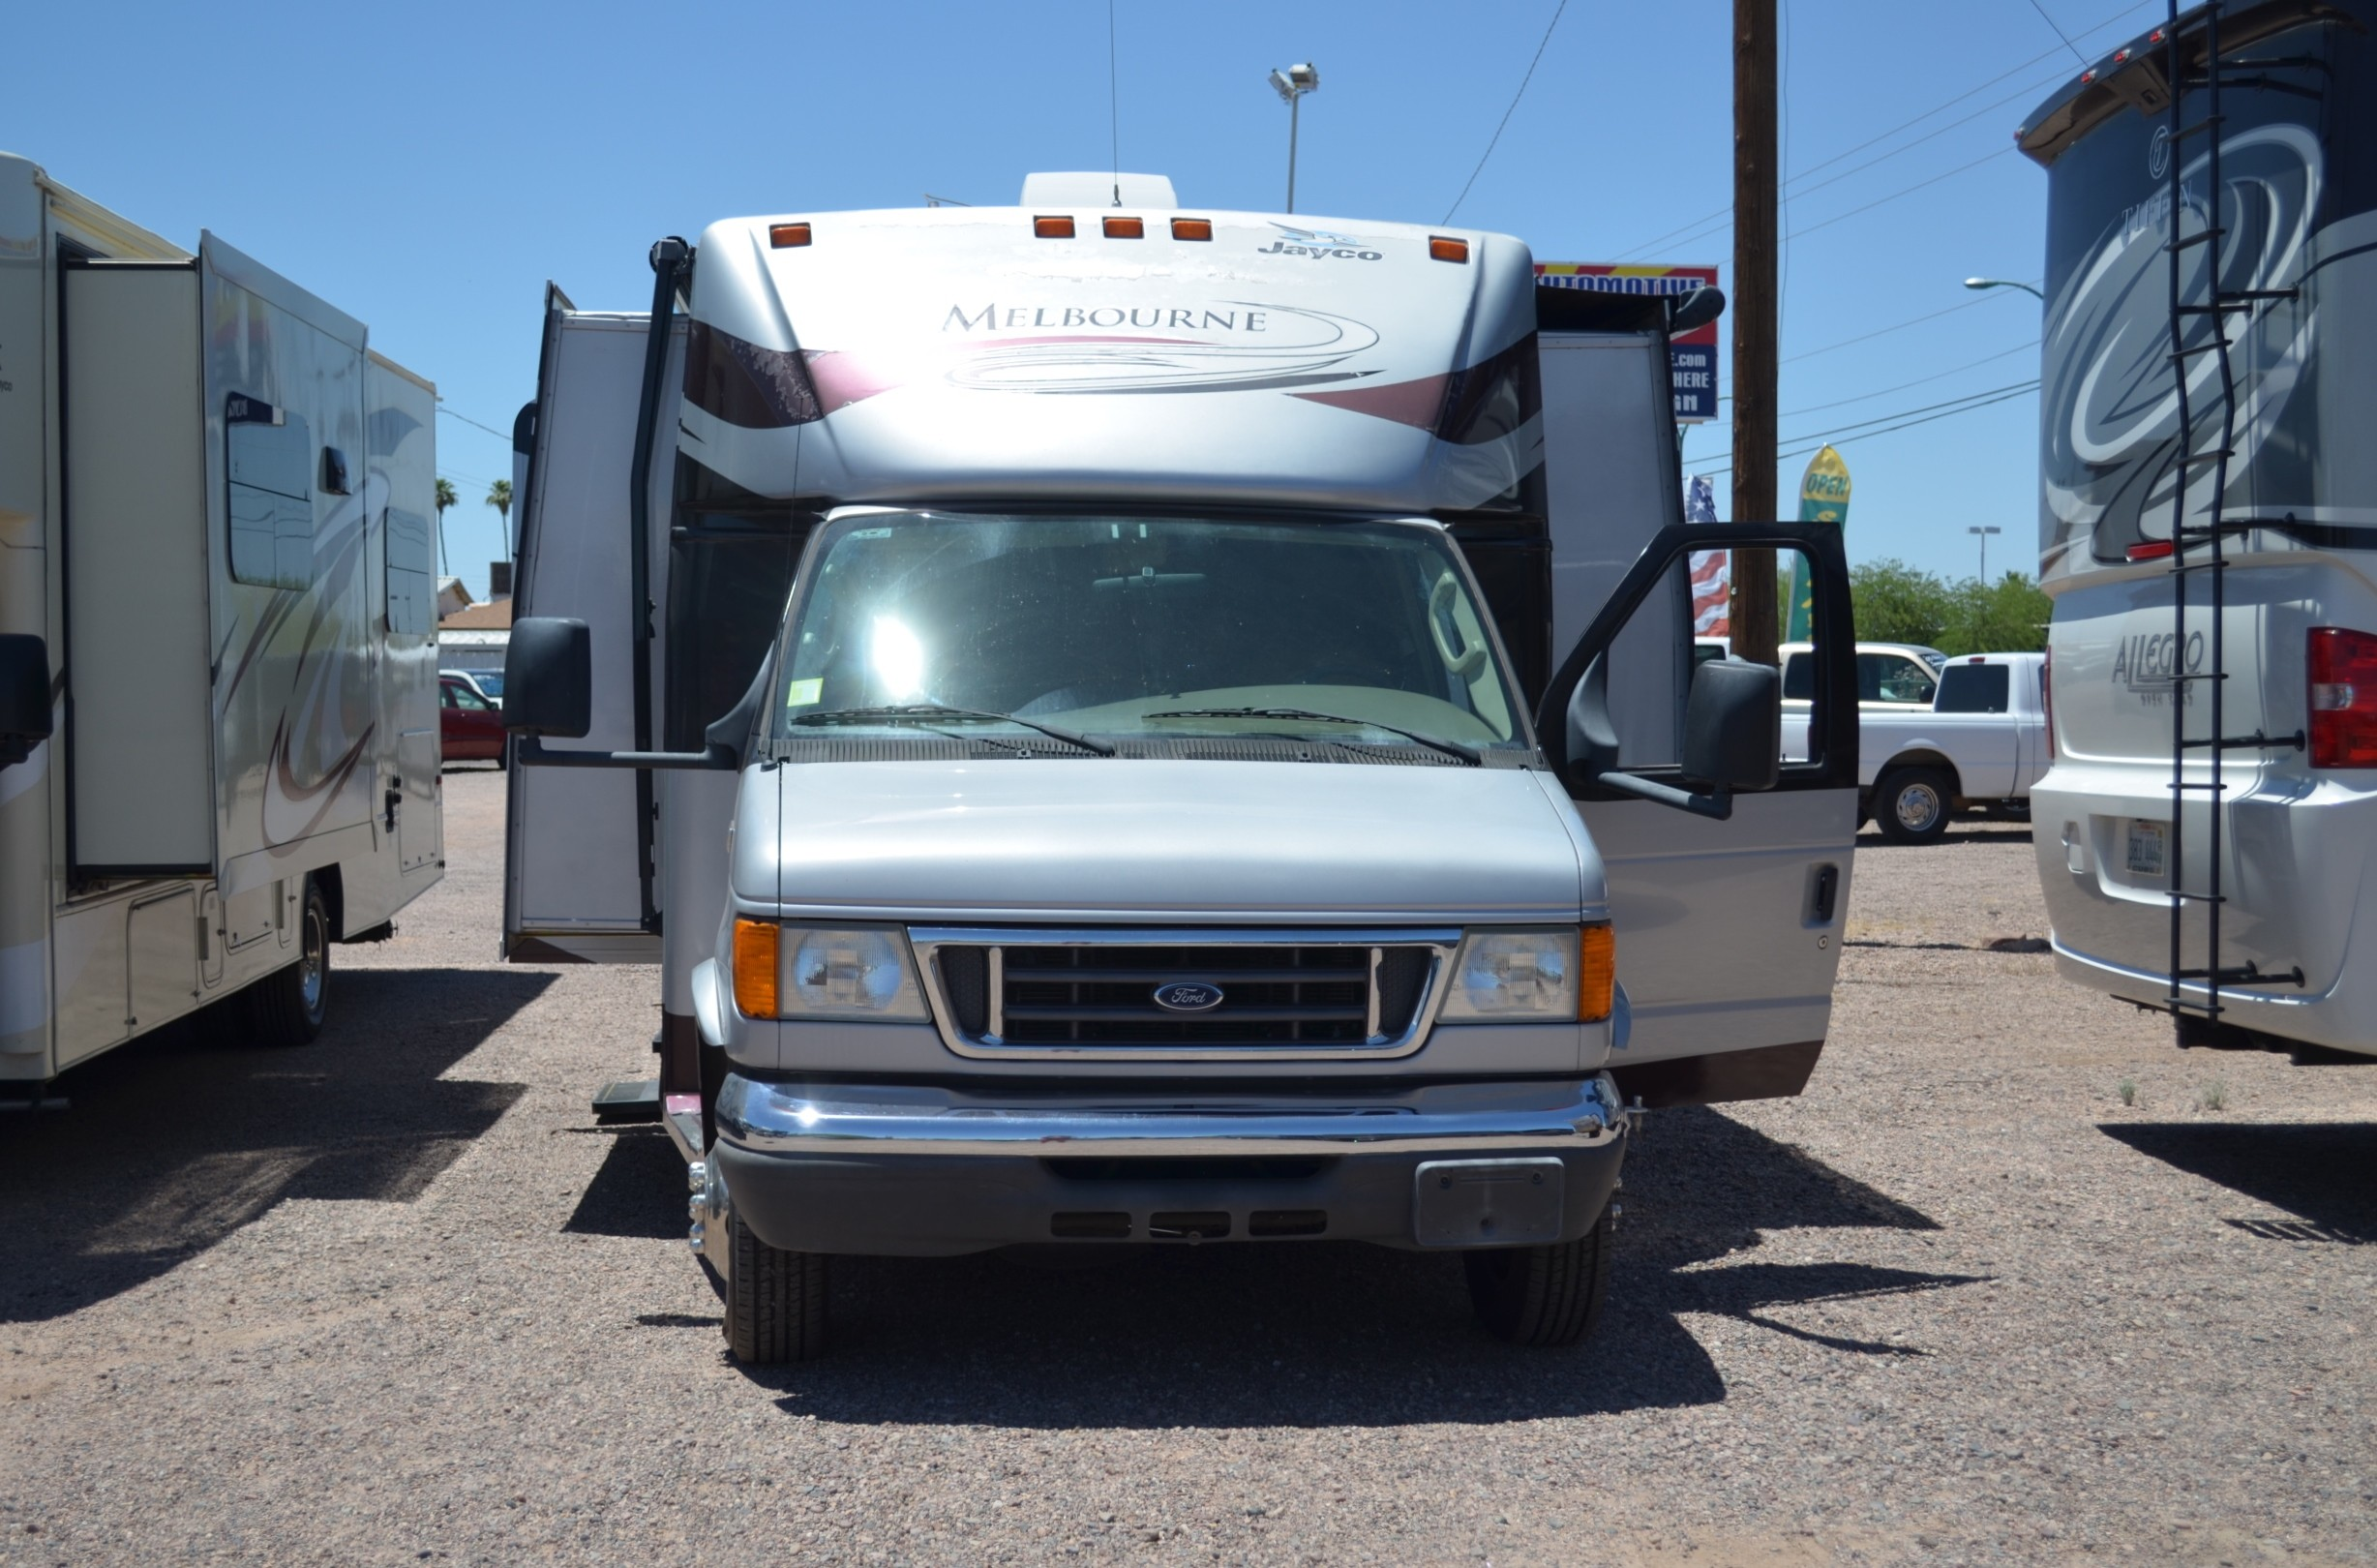 Used, 2008, Jayco, Melbourn 29D, RV - Class C